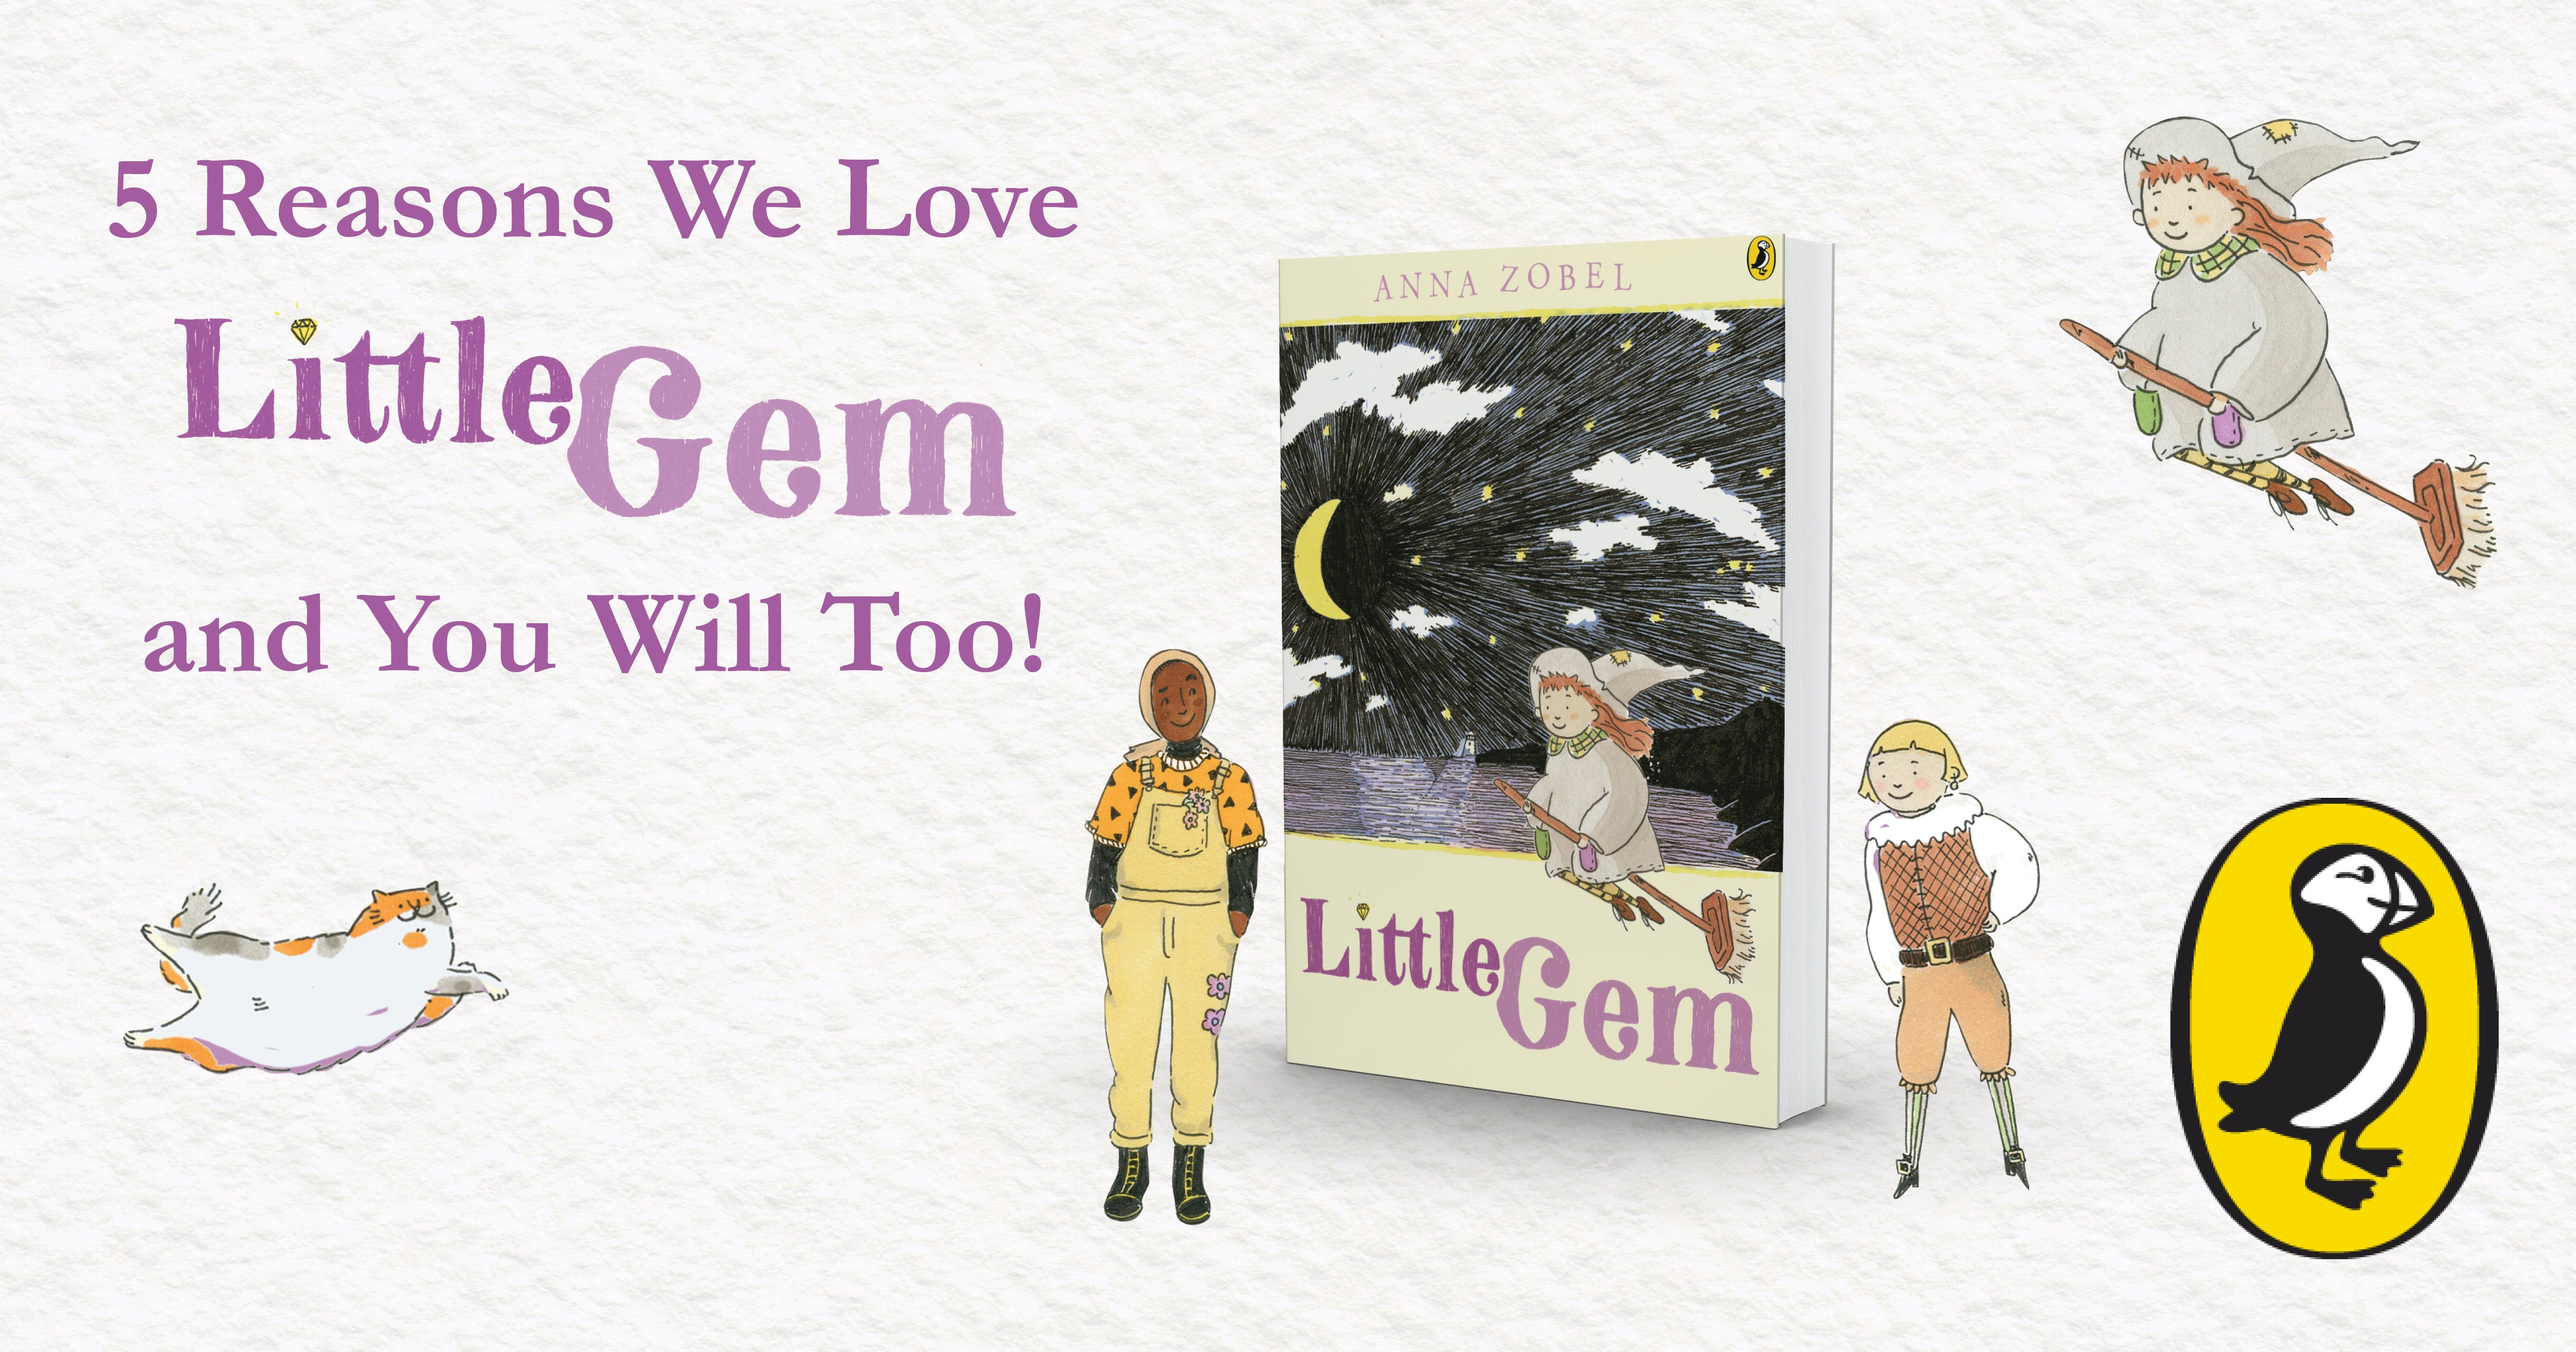 5 Reasons We Love Little Gem